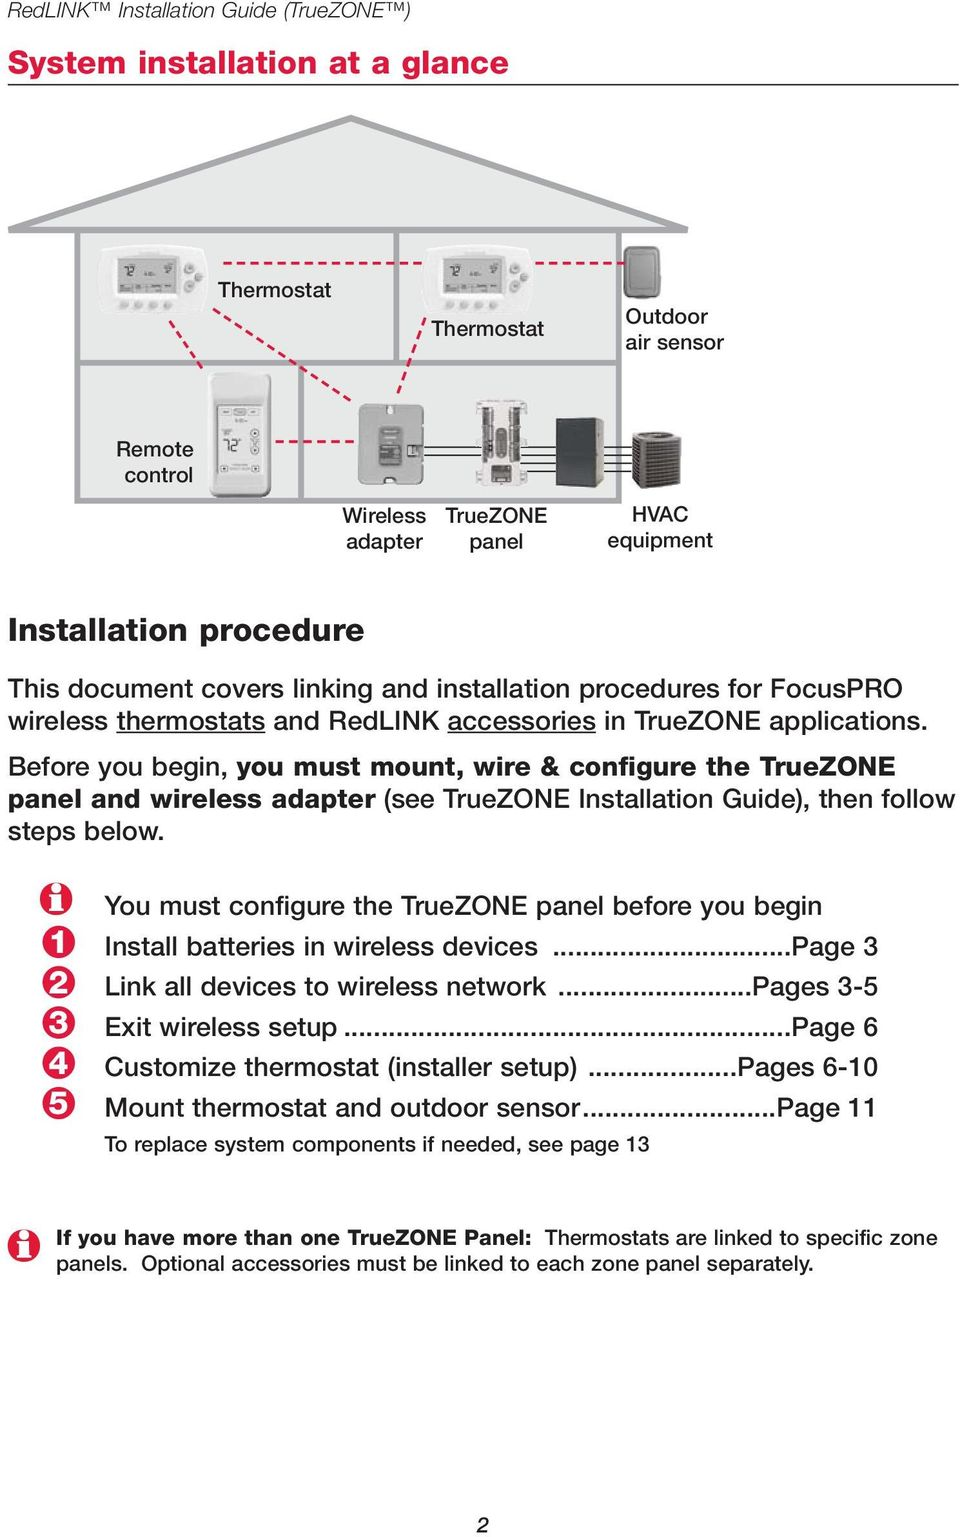 Before you begin, you must mount, wire & configure the TrueZONE panel and wireless adapter (see TrueZONE Installation Guide), then follow steps below.